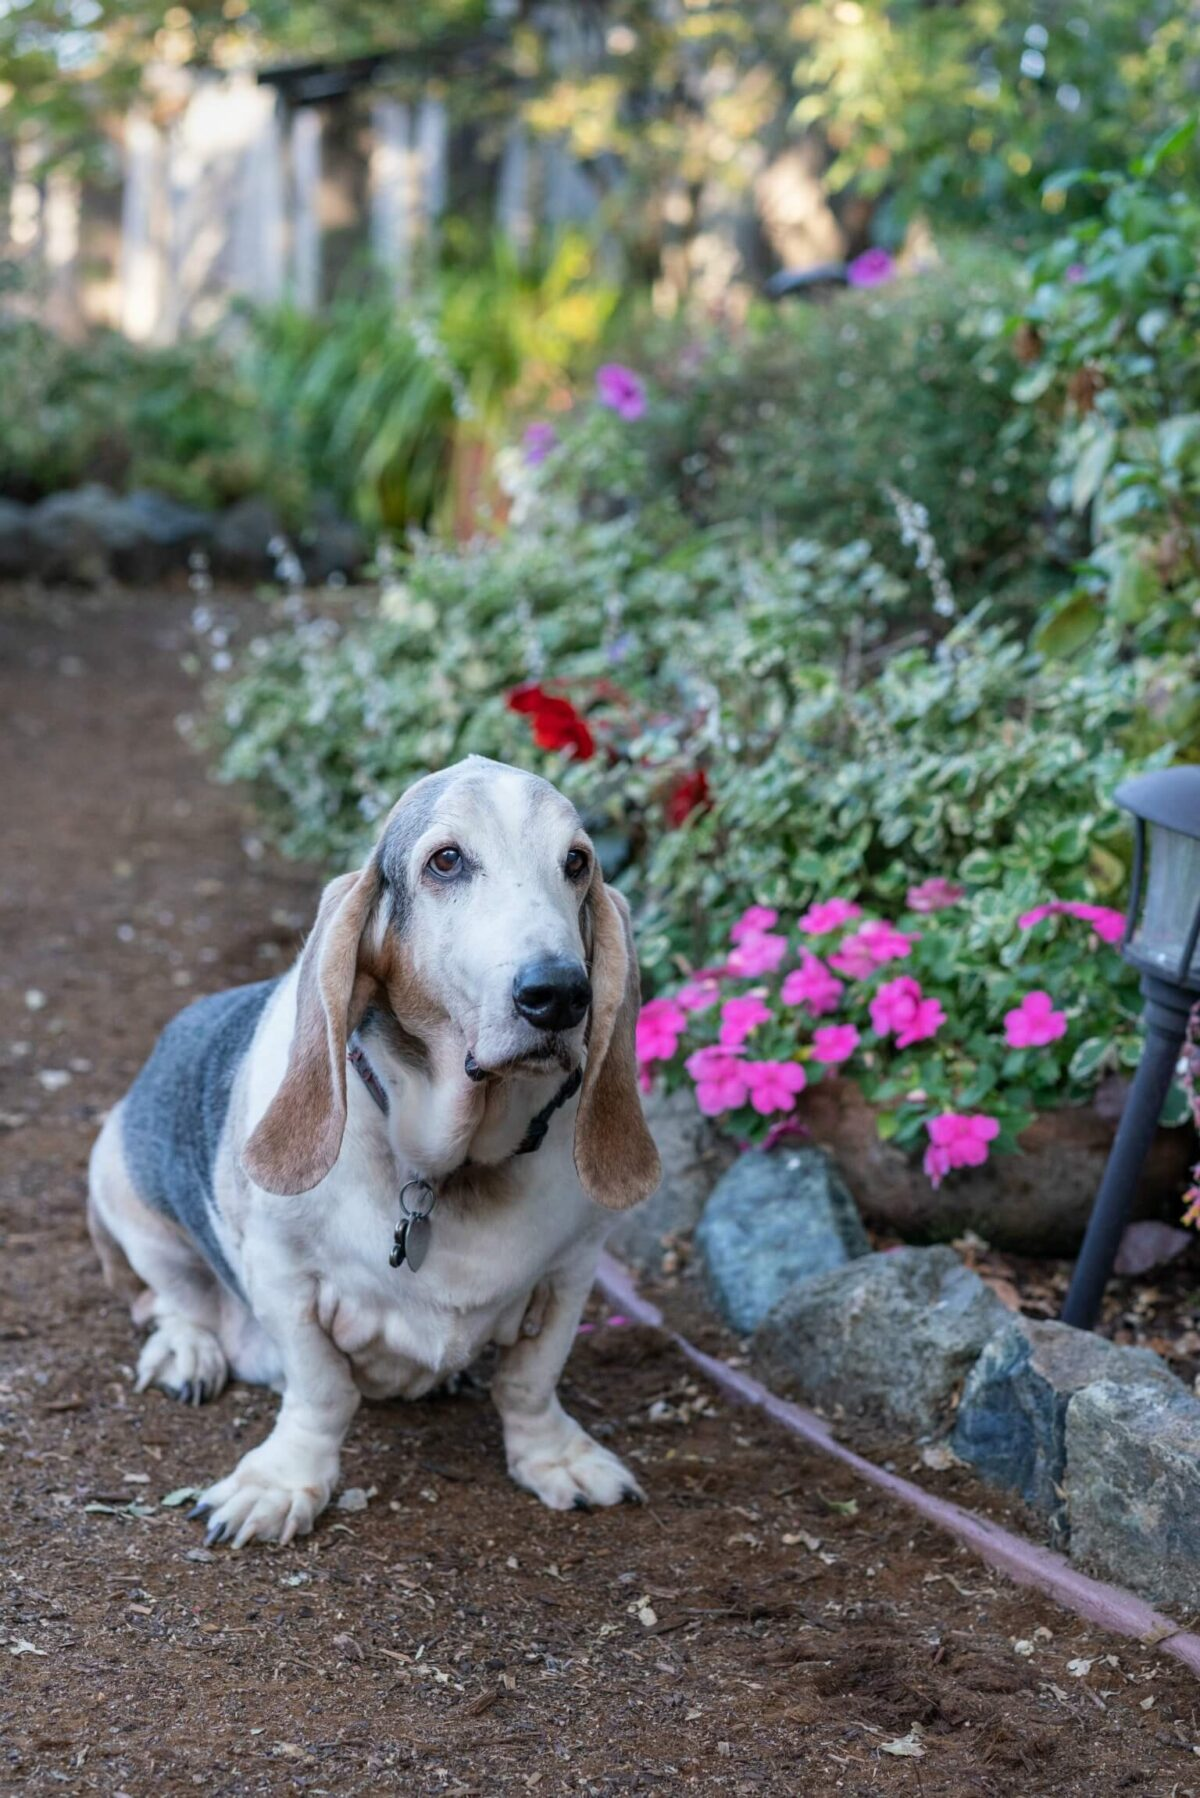 Diary of a Dog: Norman